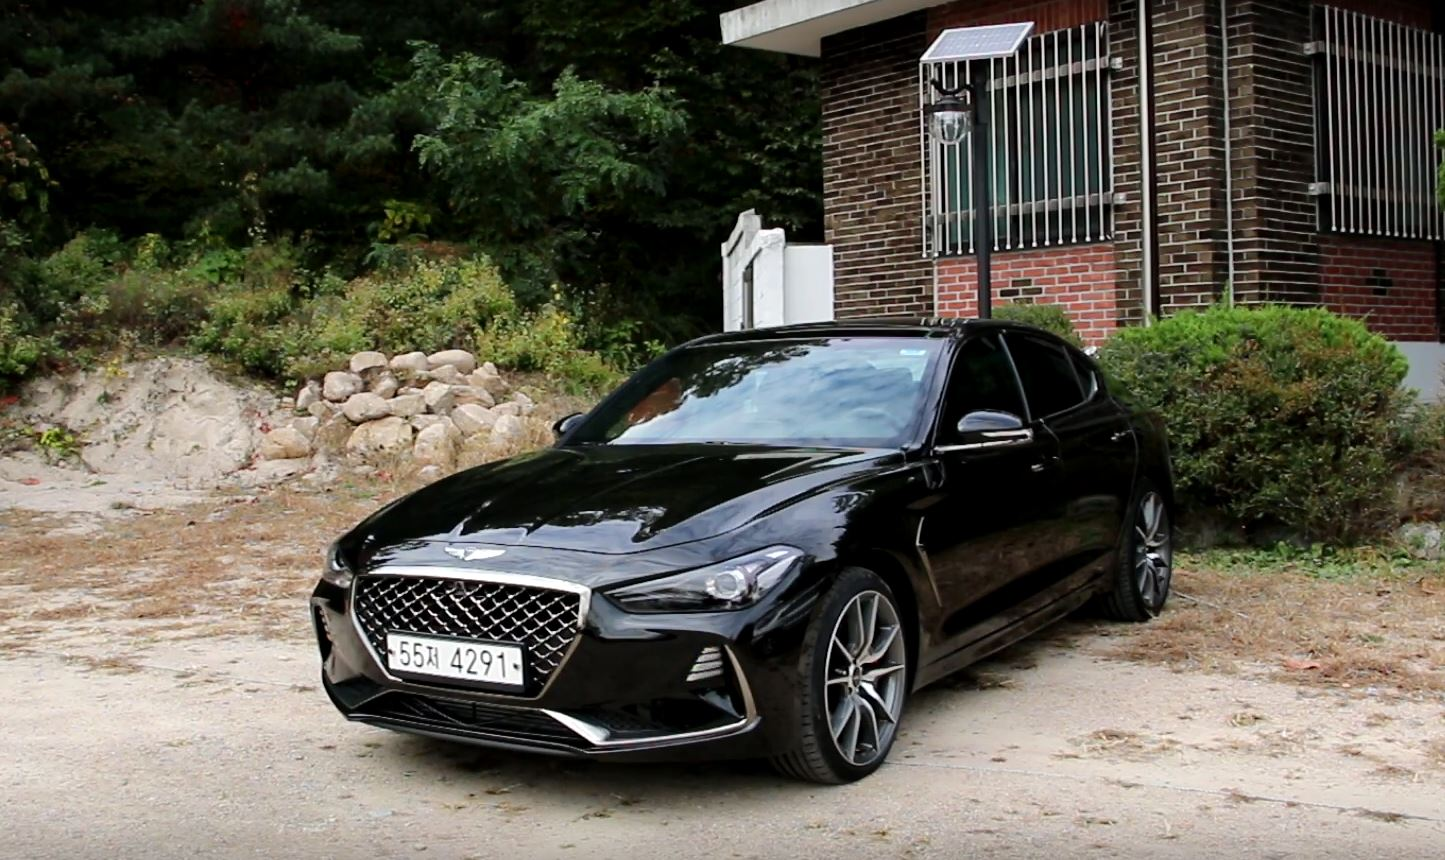 G70 Test Drive >> Genesis G70 3.3T Acceleration and First Impressions from Korea - autoevolution